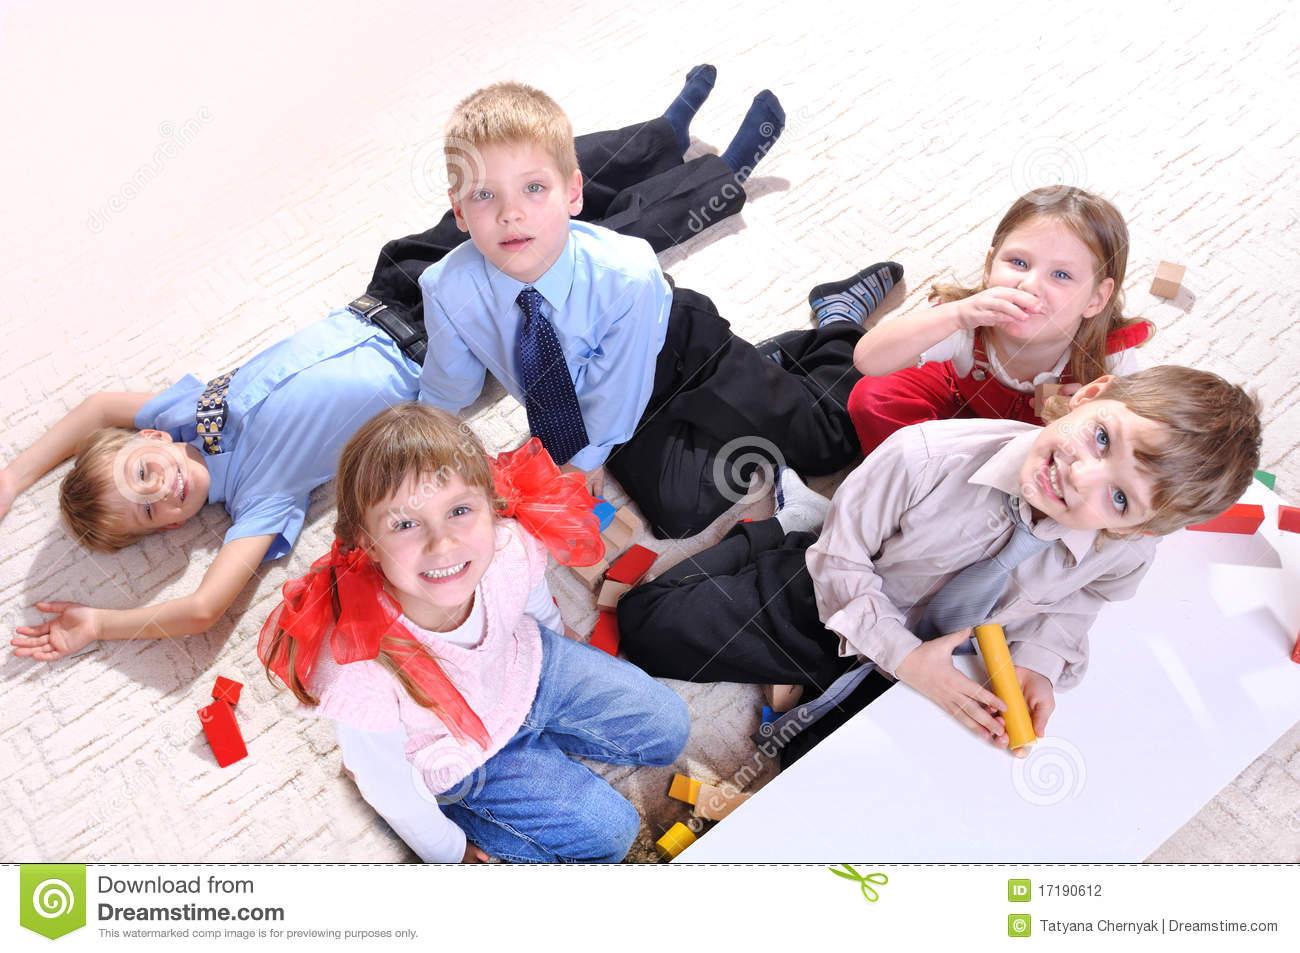 Children playing on the floor